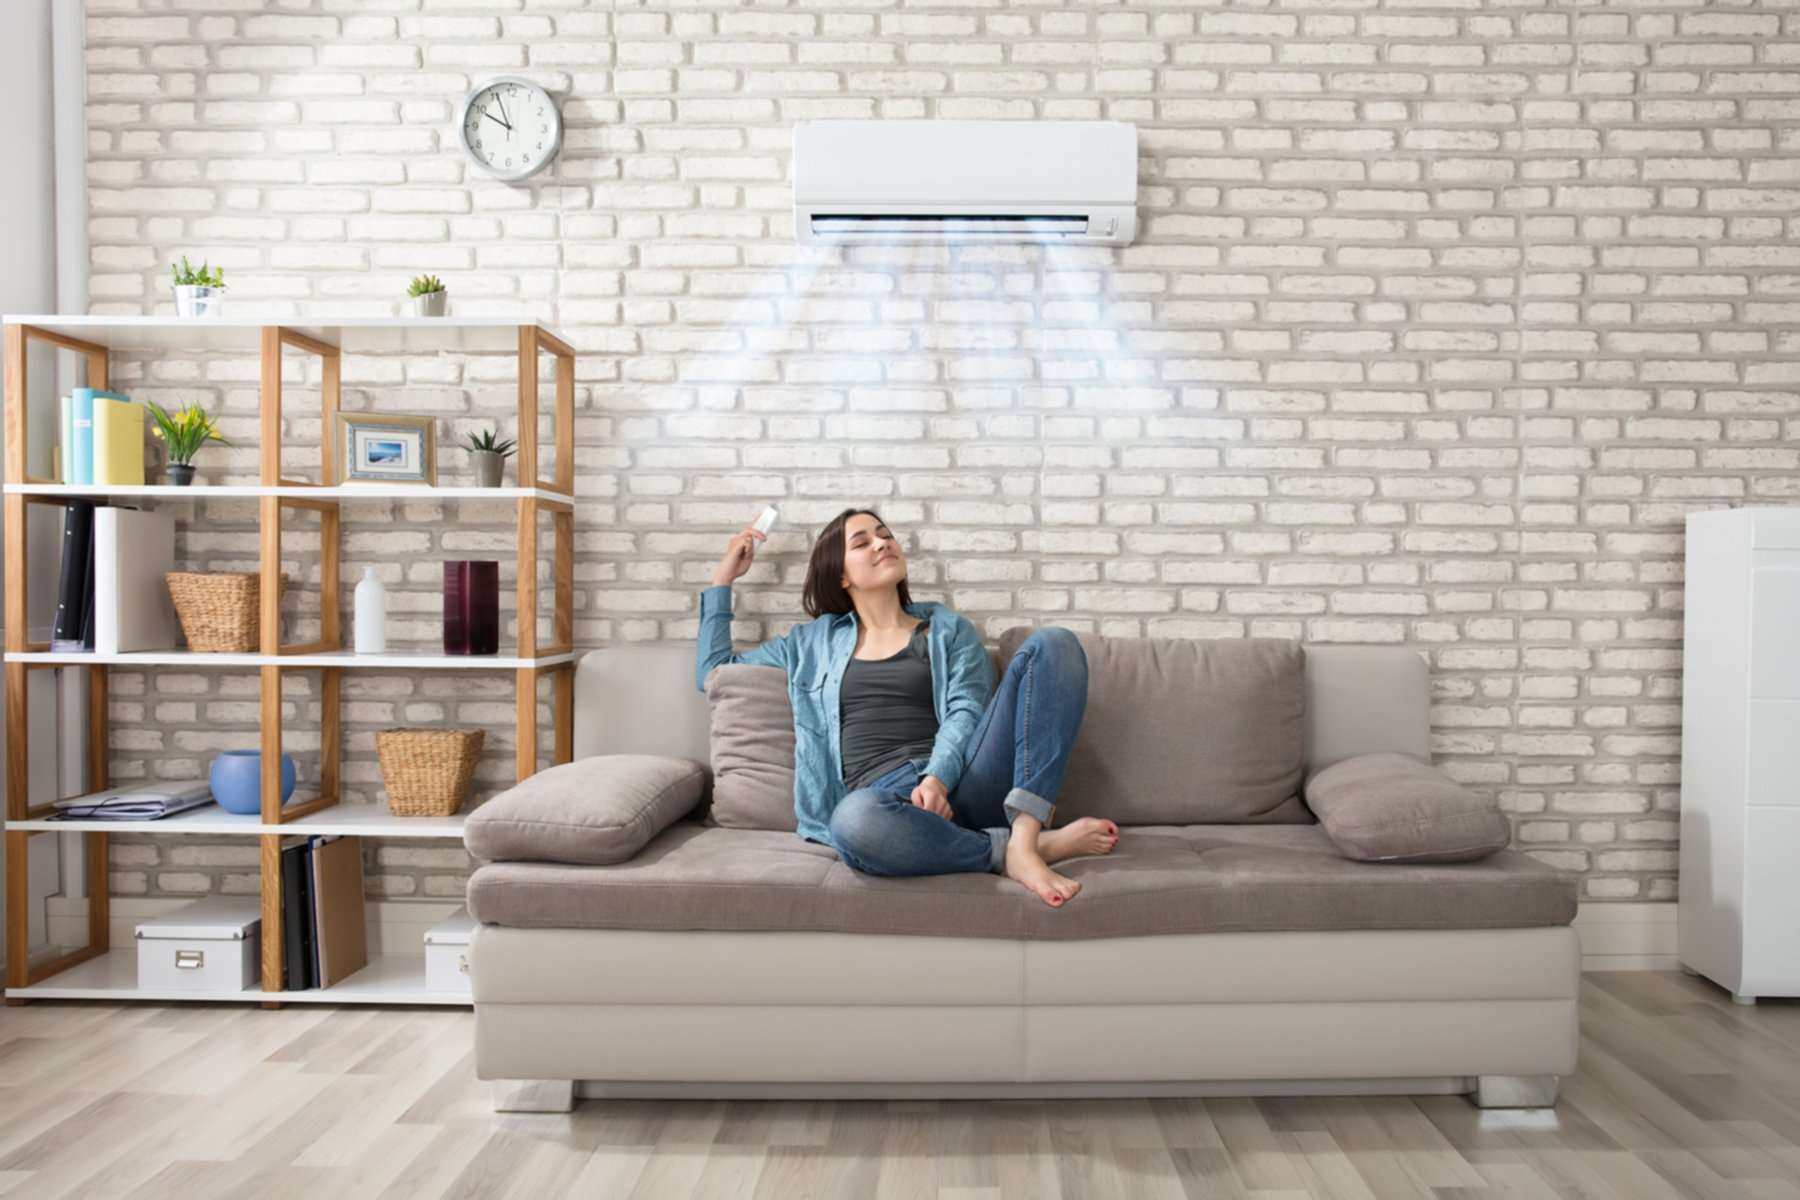 7 Things You Should Know While Buying an Air Conditioner in India |  TopTeny.com